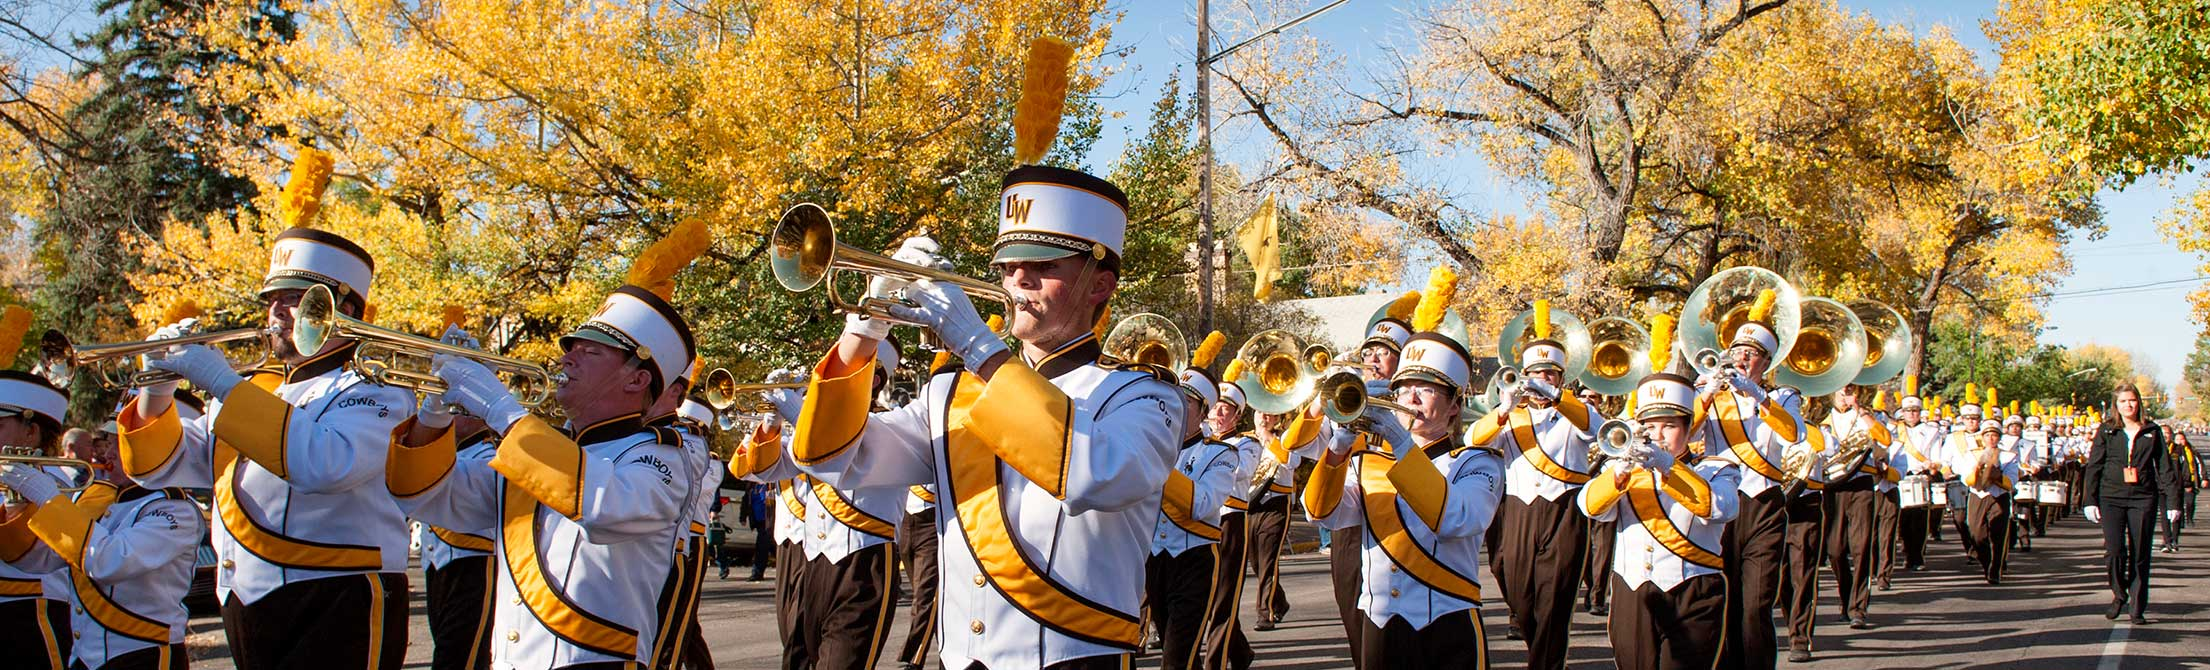 image of the UW band